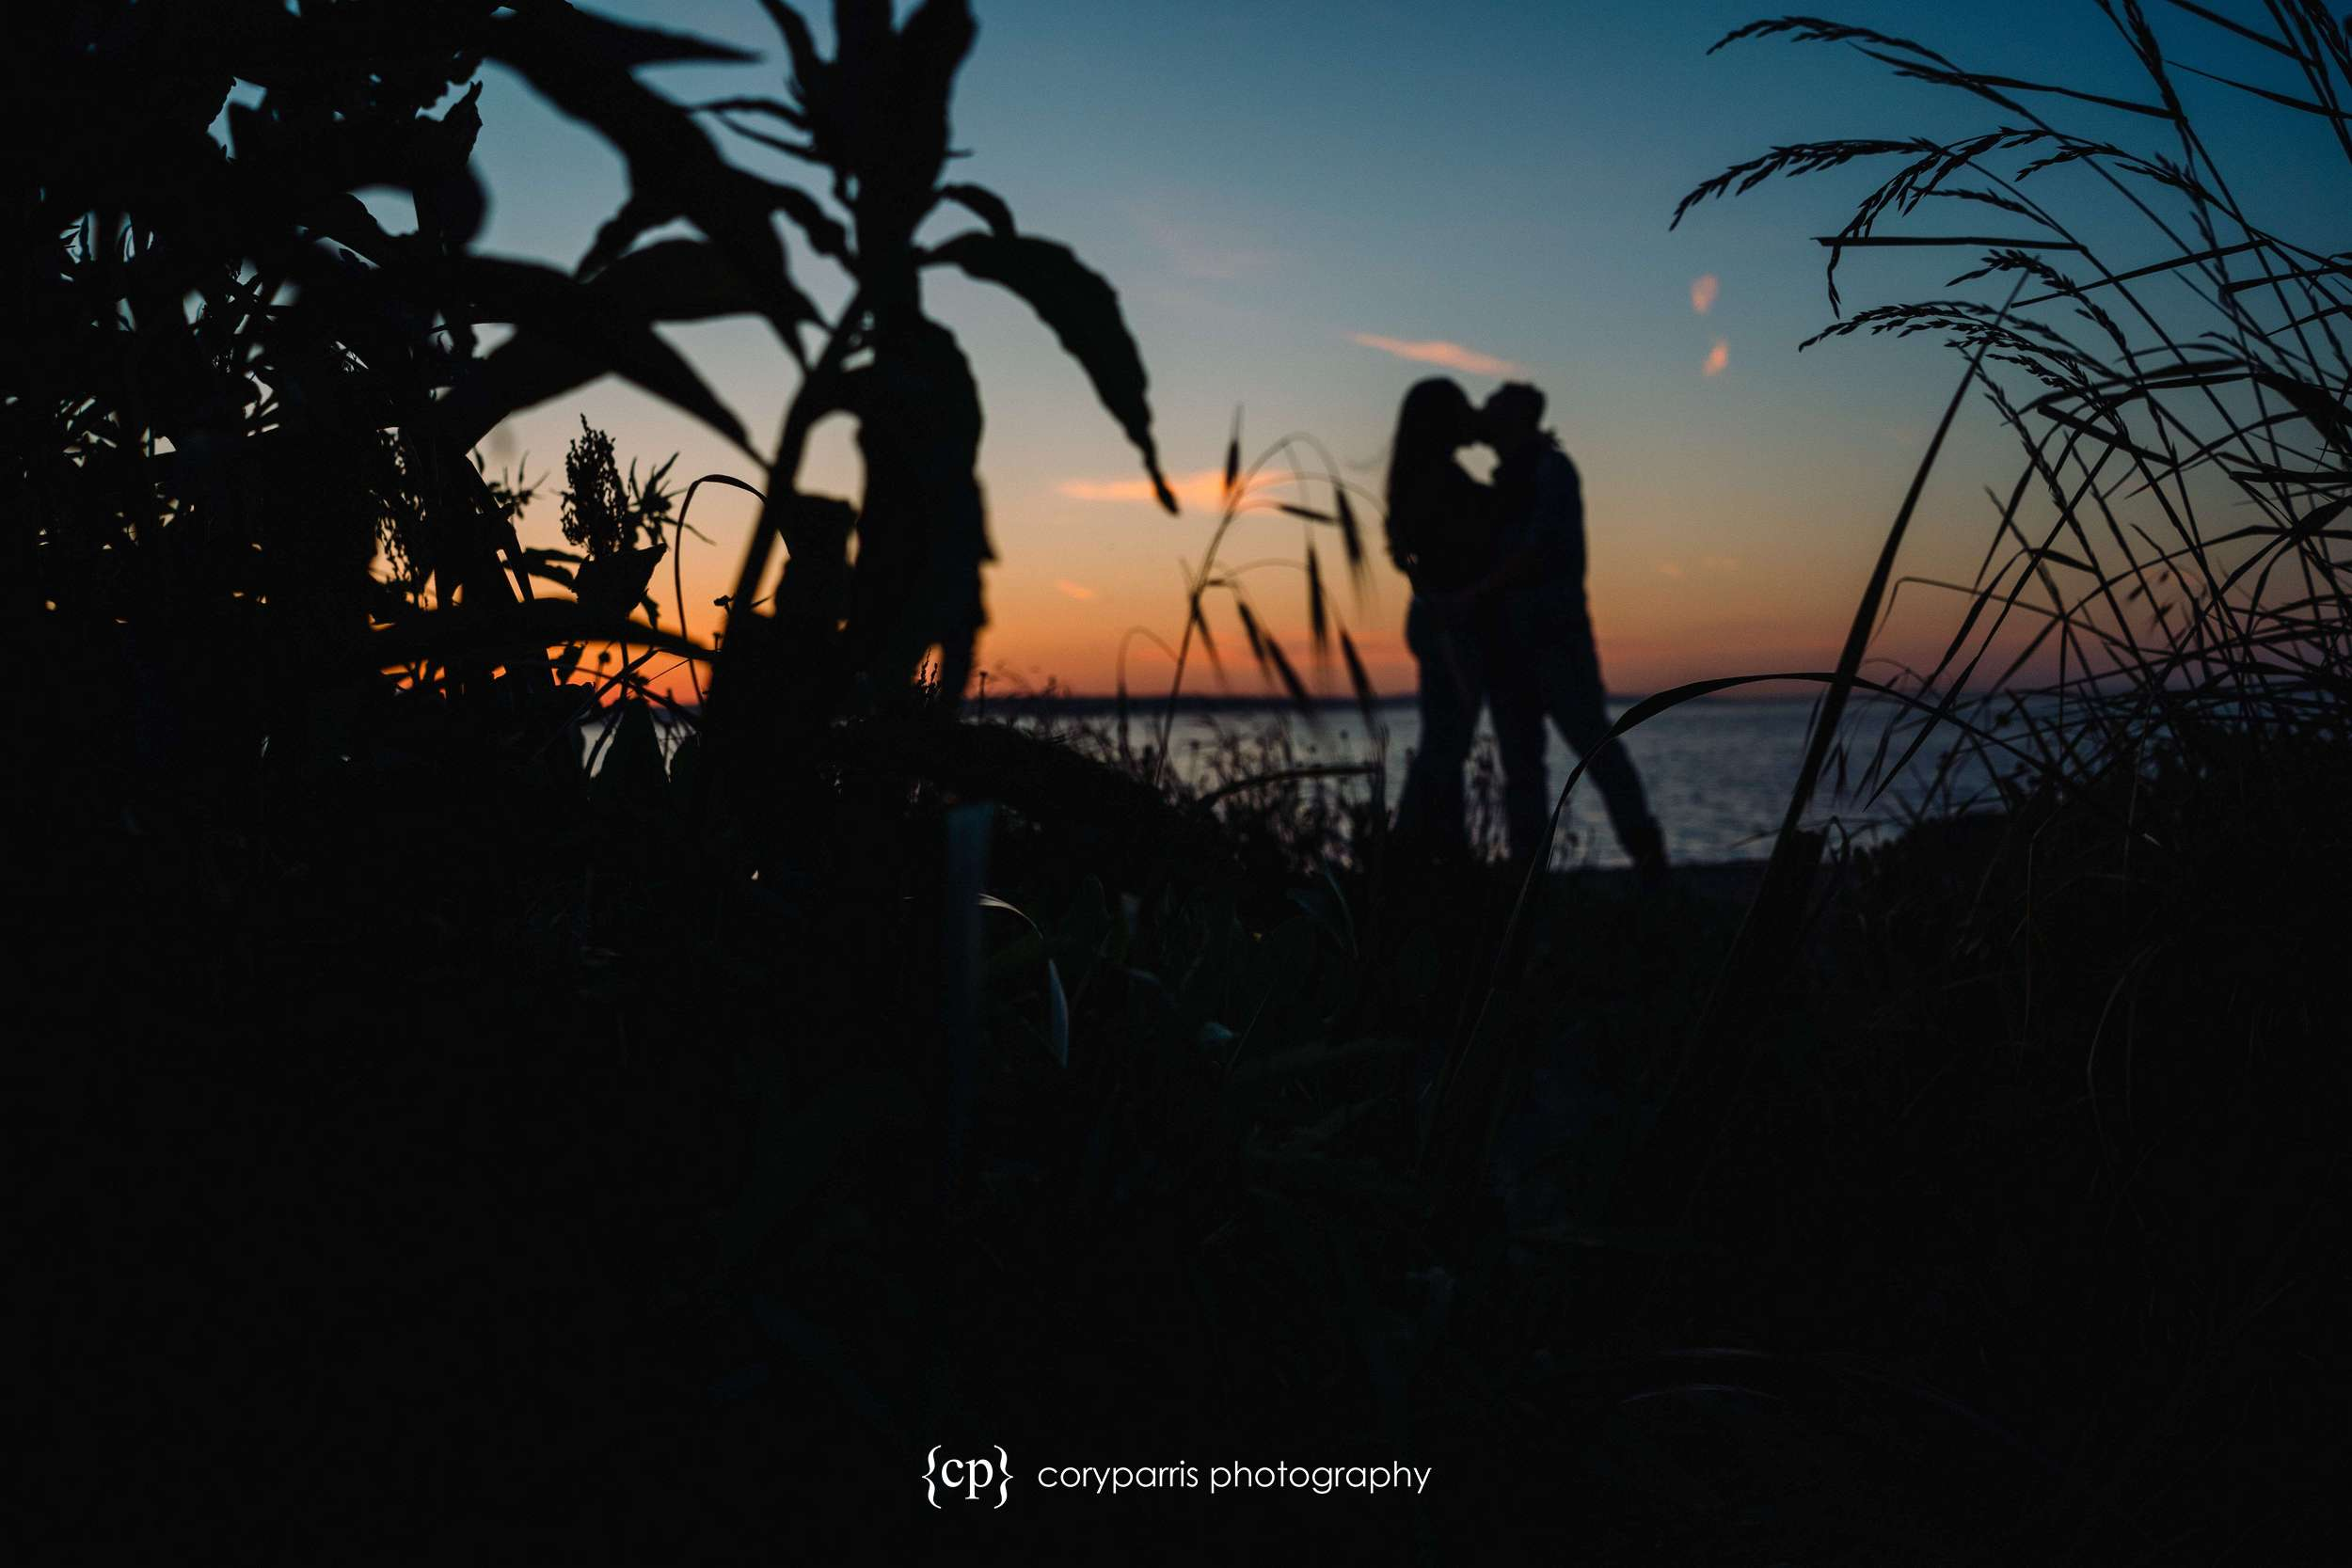 With this one, I focused on the long grass to make the couple out of focus for an artistic look.